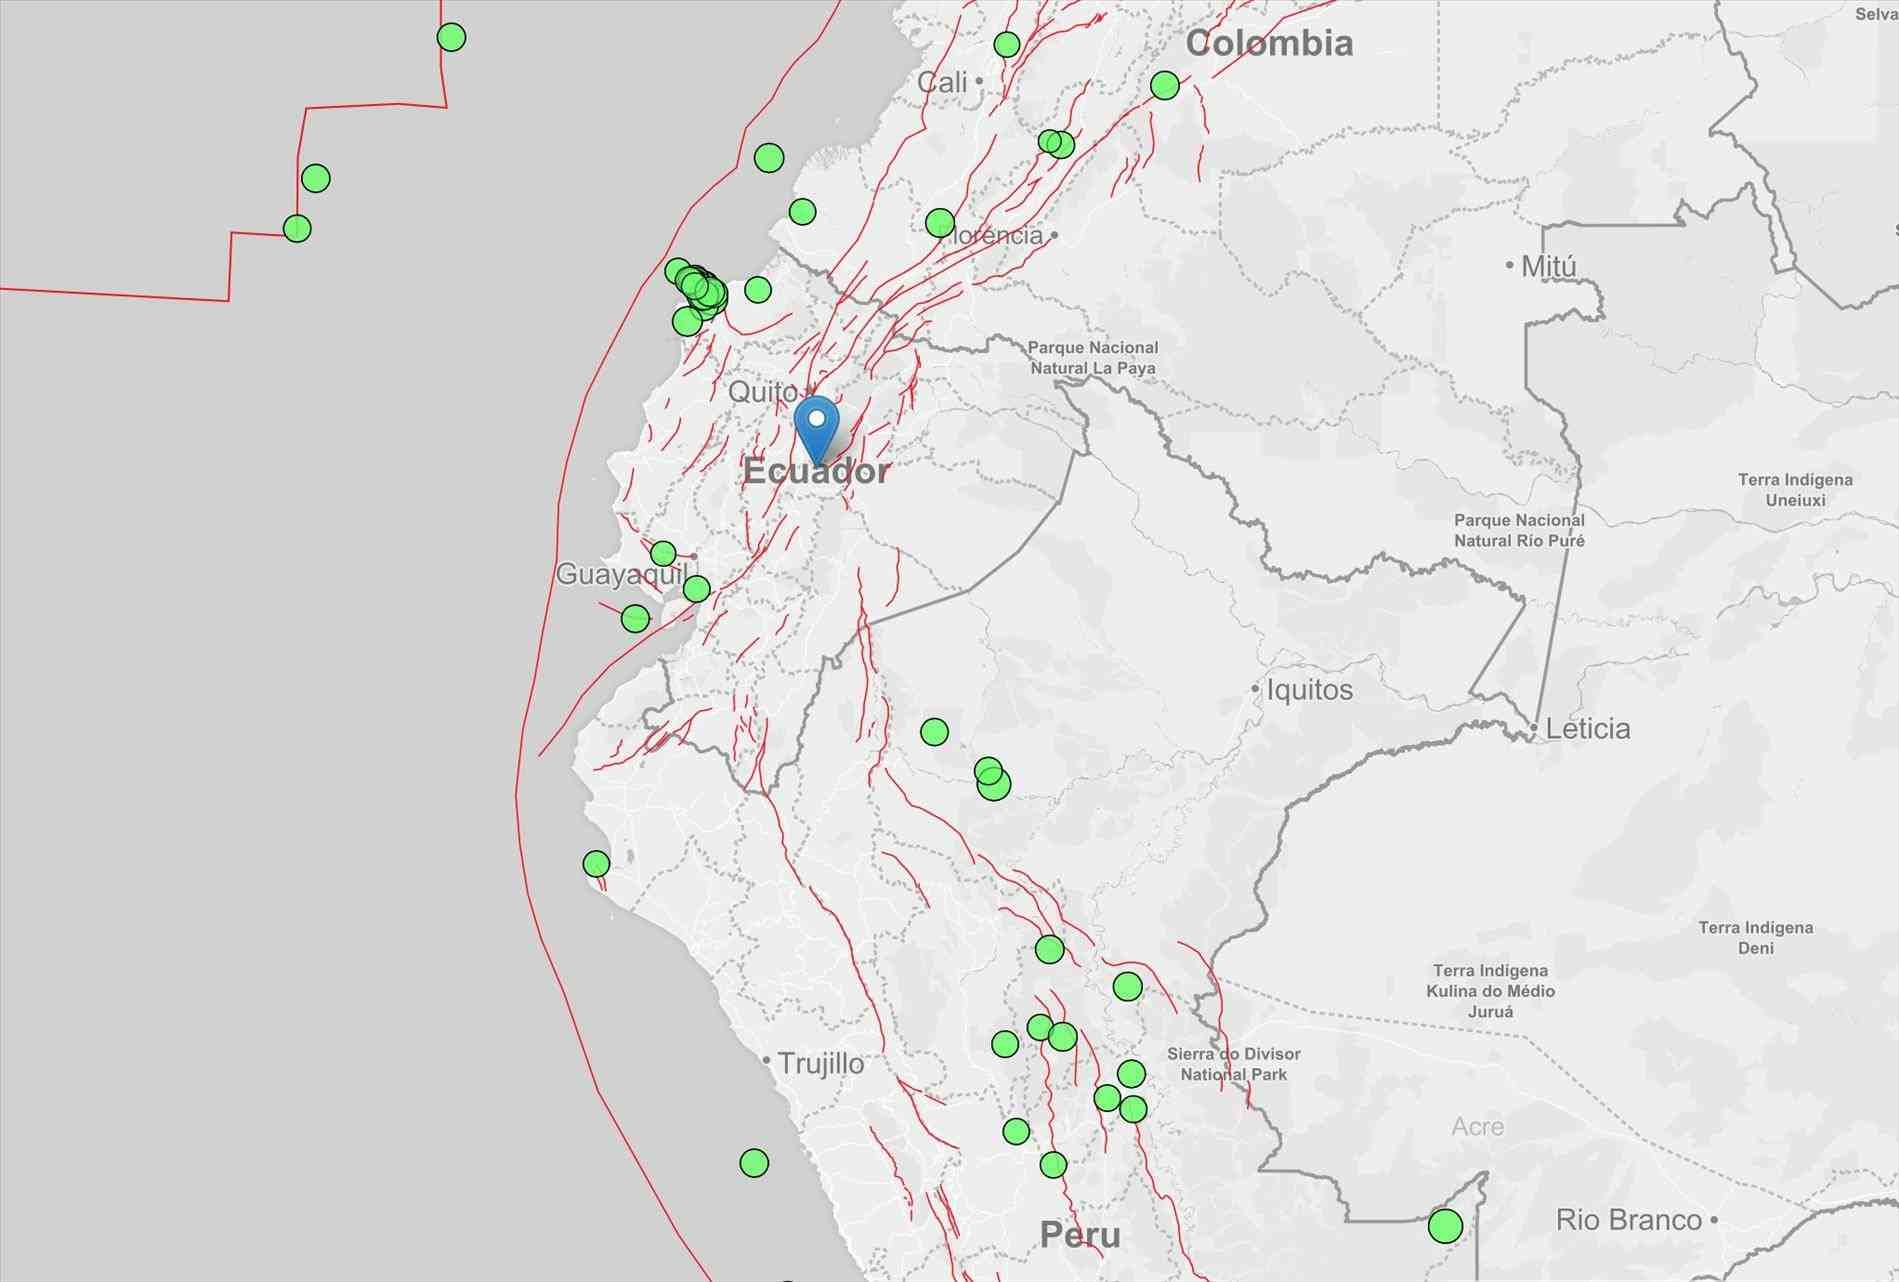 New post earthquake fault lines world map visit bobayule trending new post earthquake fault lines world map visit bobayule trending decors gumiabroncs Choice Image